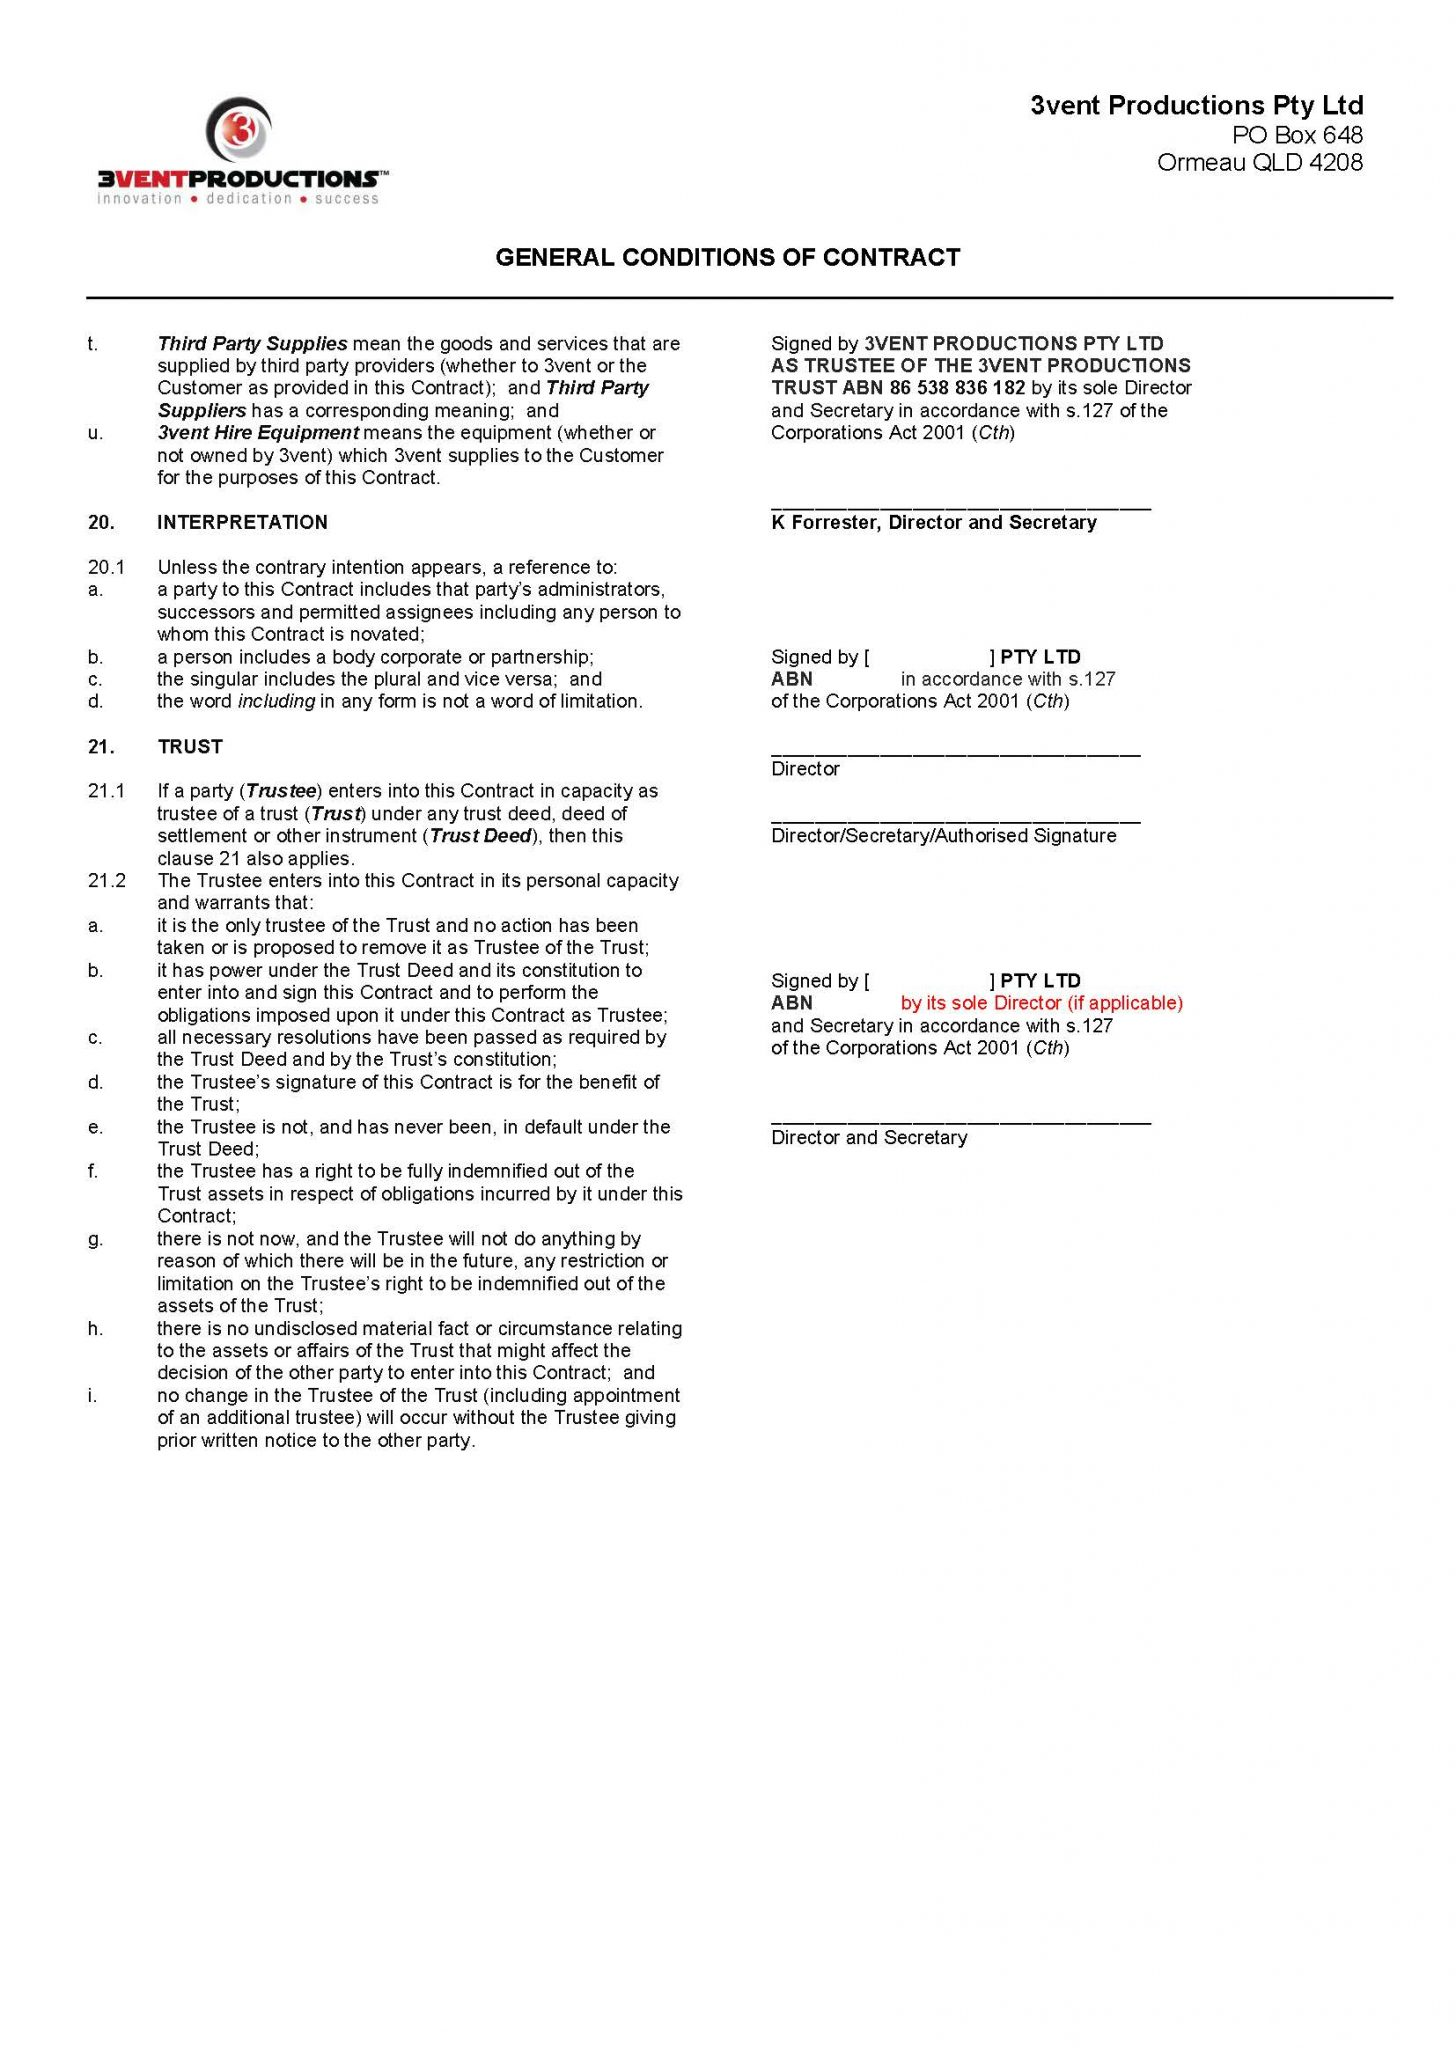 3vent productions terms & conditions 2018 page 6